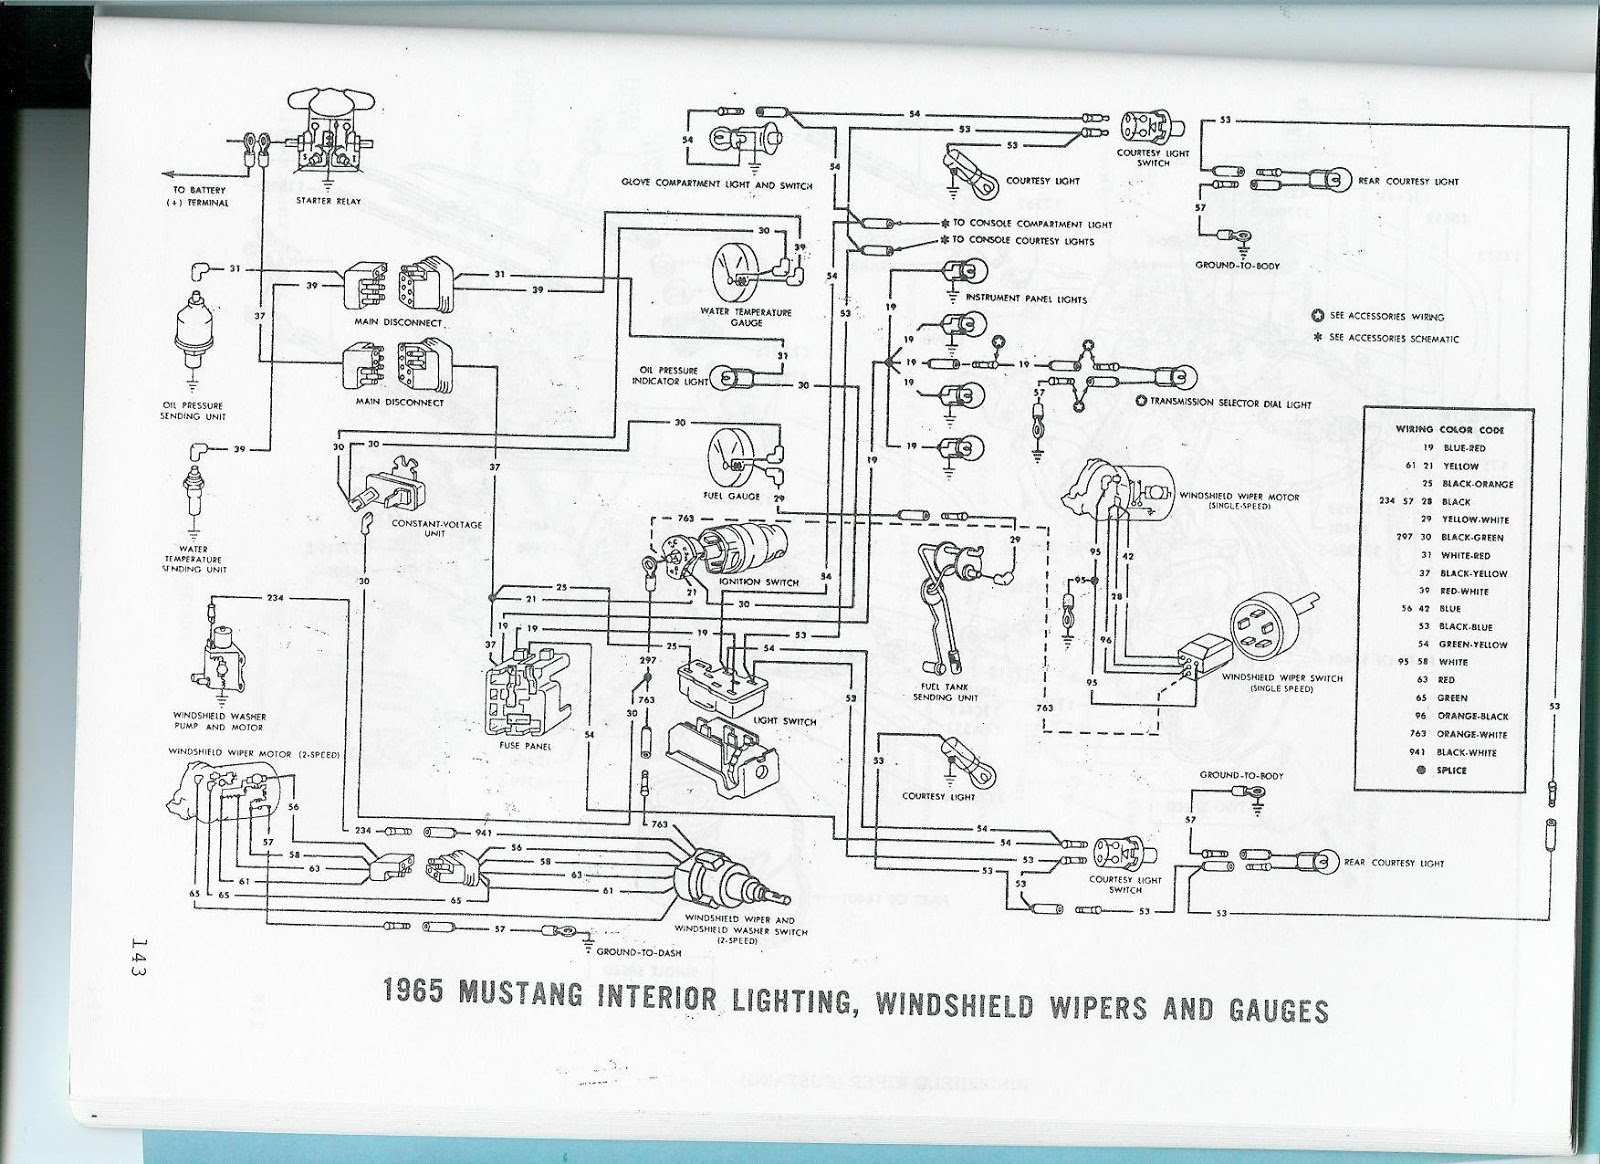 1966 Gto Ac Wiring Schematic - Wiring Diagram Progresif  Chevelle Dash Wiring Harness Diagram For on 1966 chevelle dash removal diagram, 1966 chevelle starter wiring diagram, 1969 camaro wiring harness diagram, 1966 chevelle dash wiring diagram,